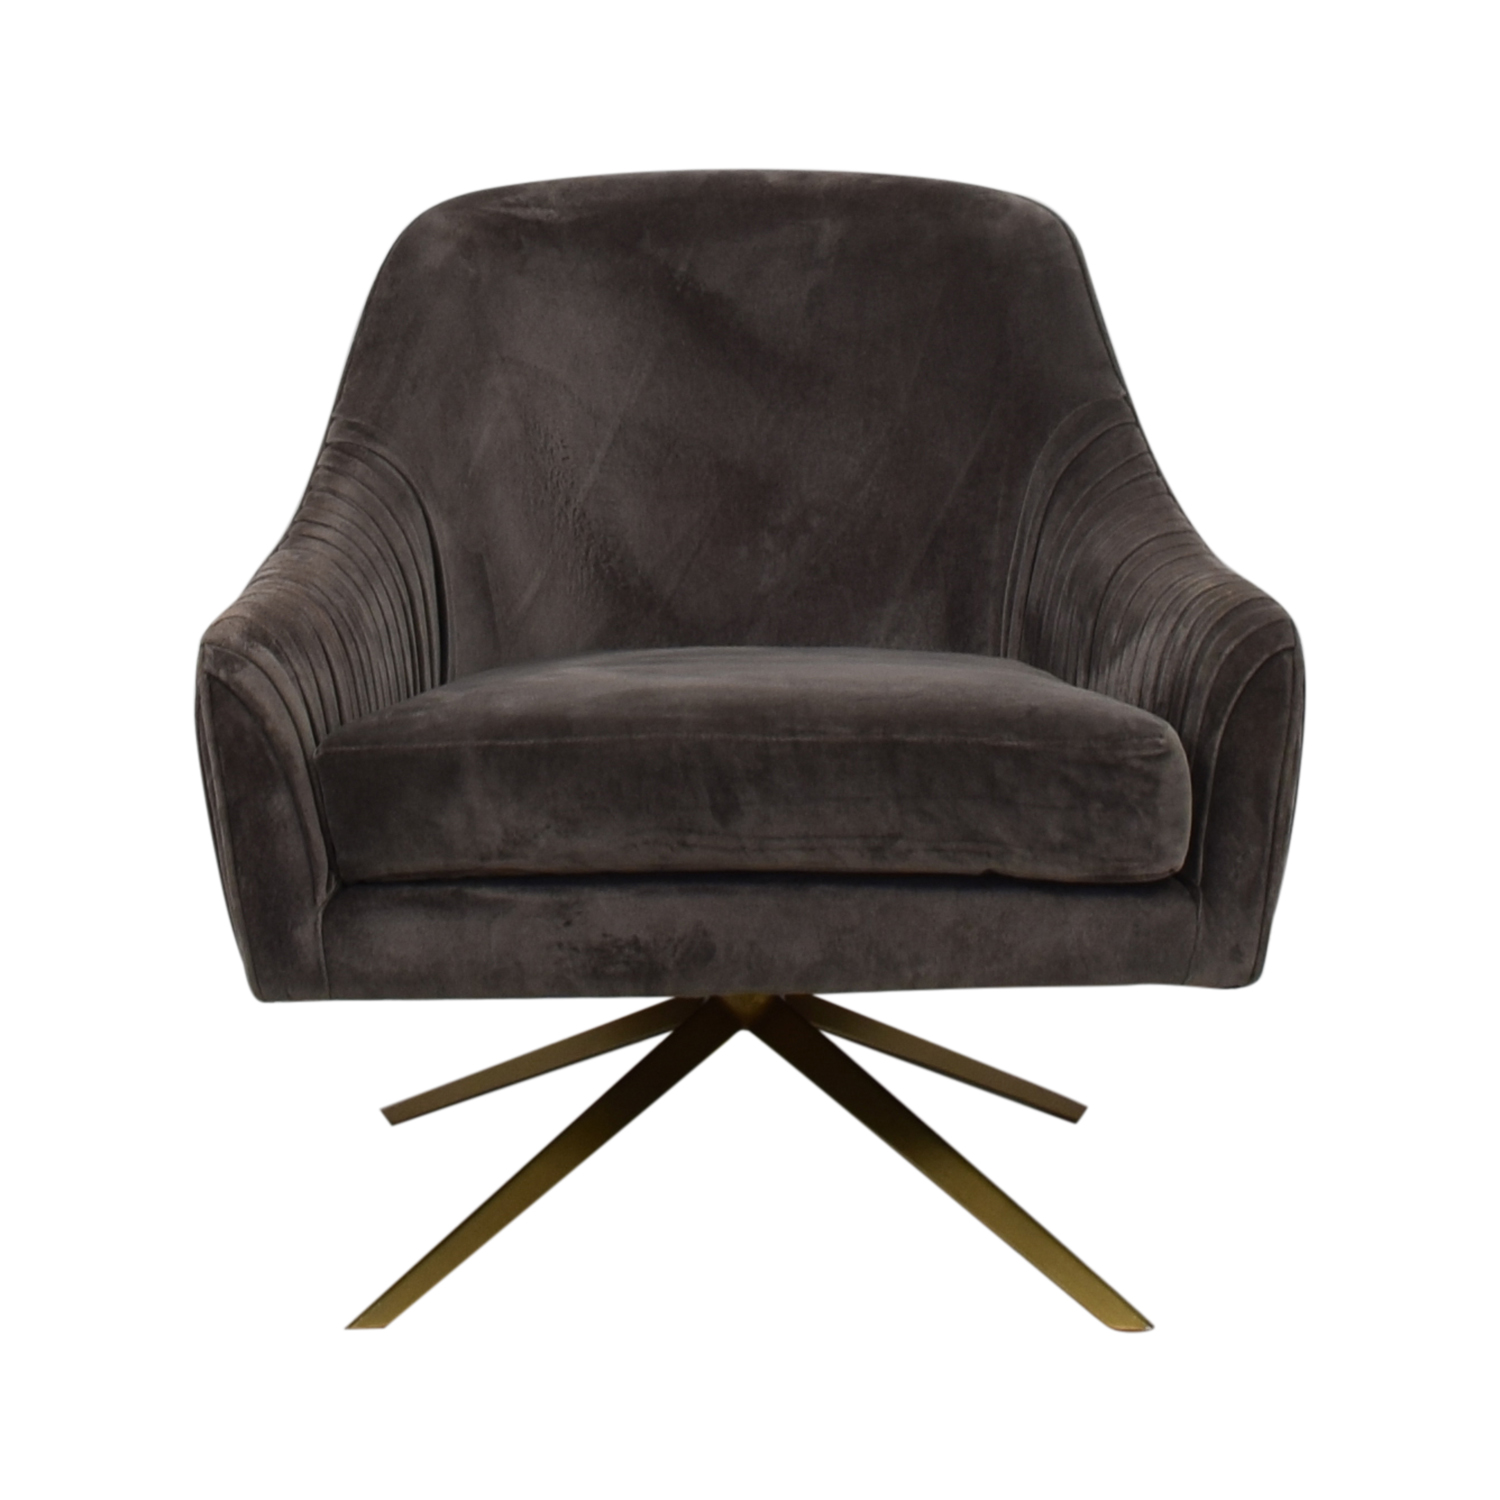 West Elm West Elm Roar and Rabbit Swivel Chair discount